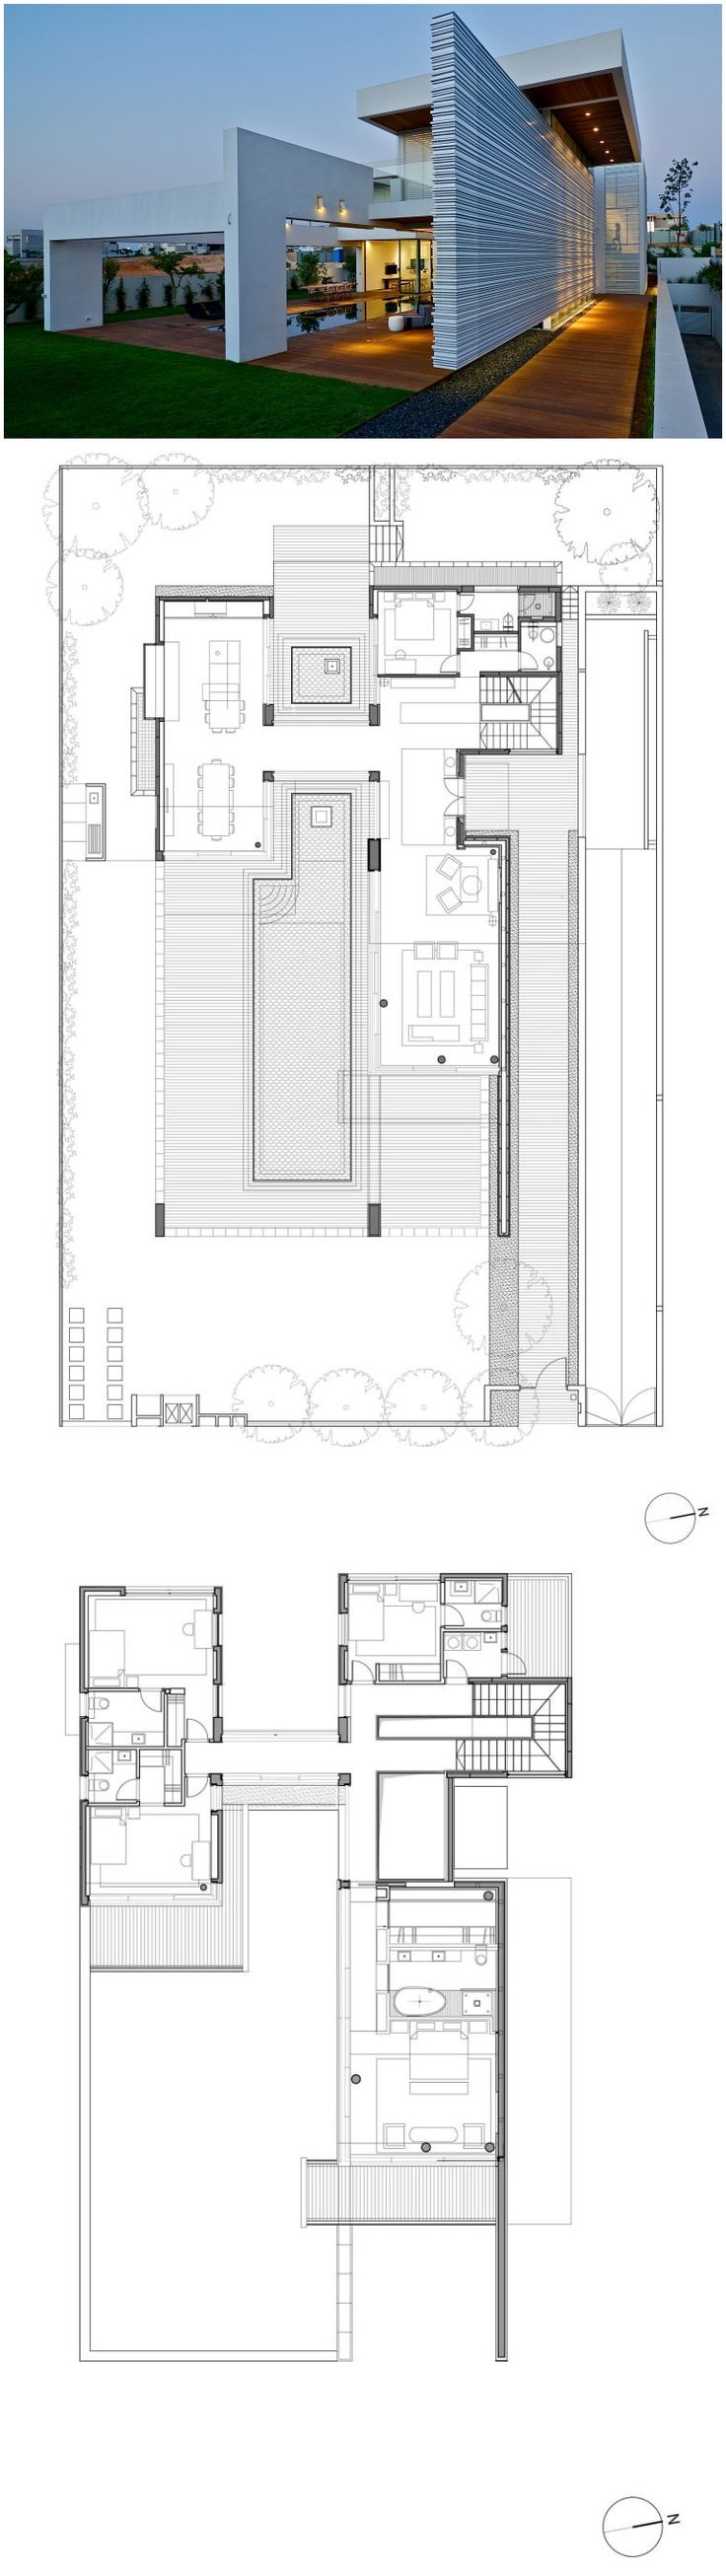 Villa c gal marom architects